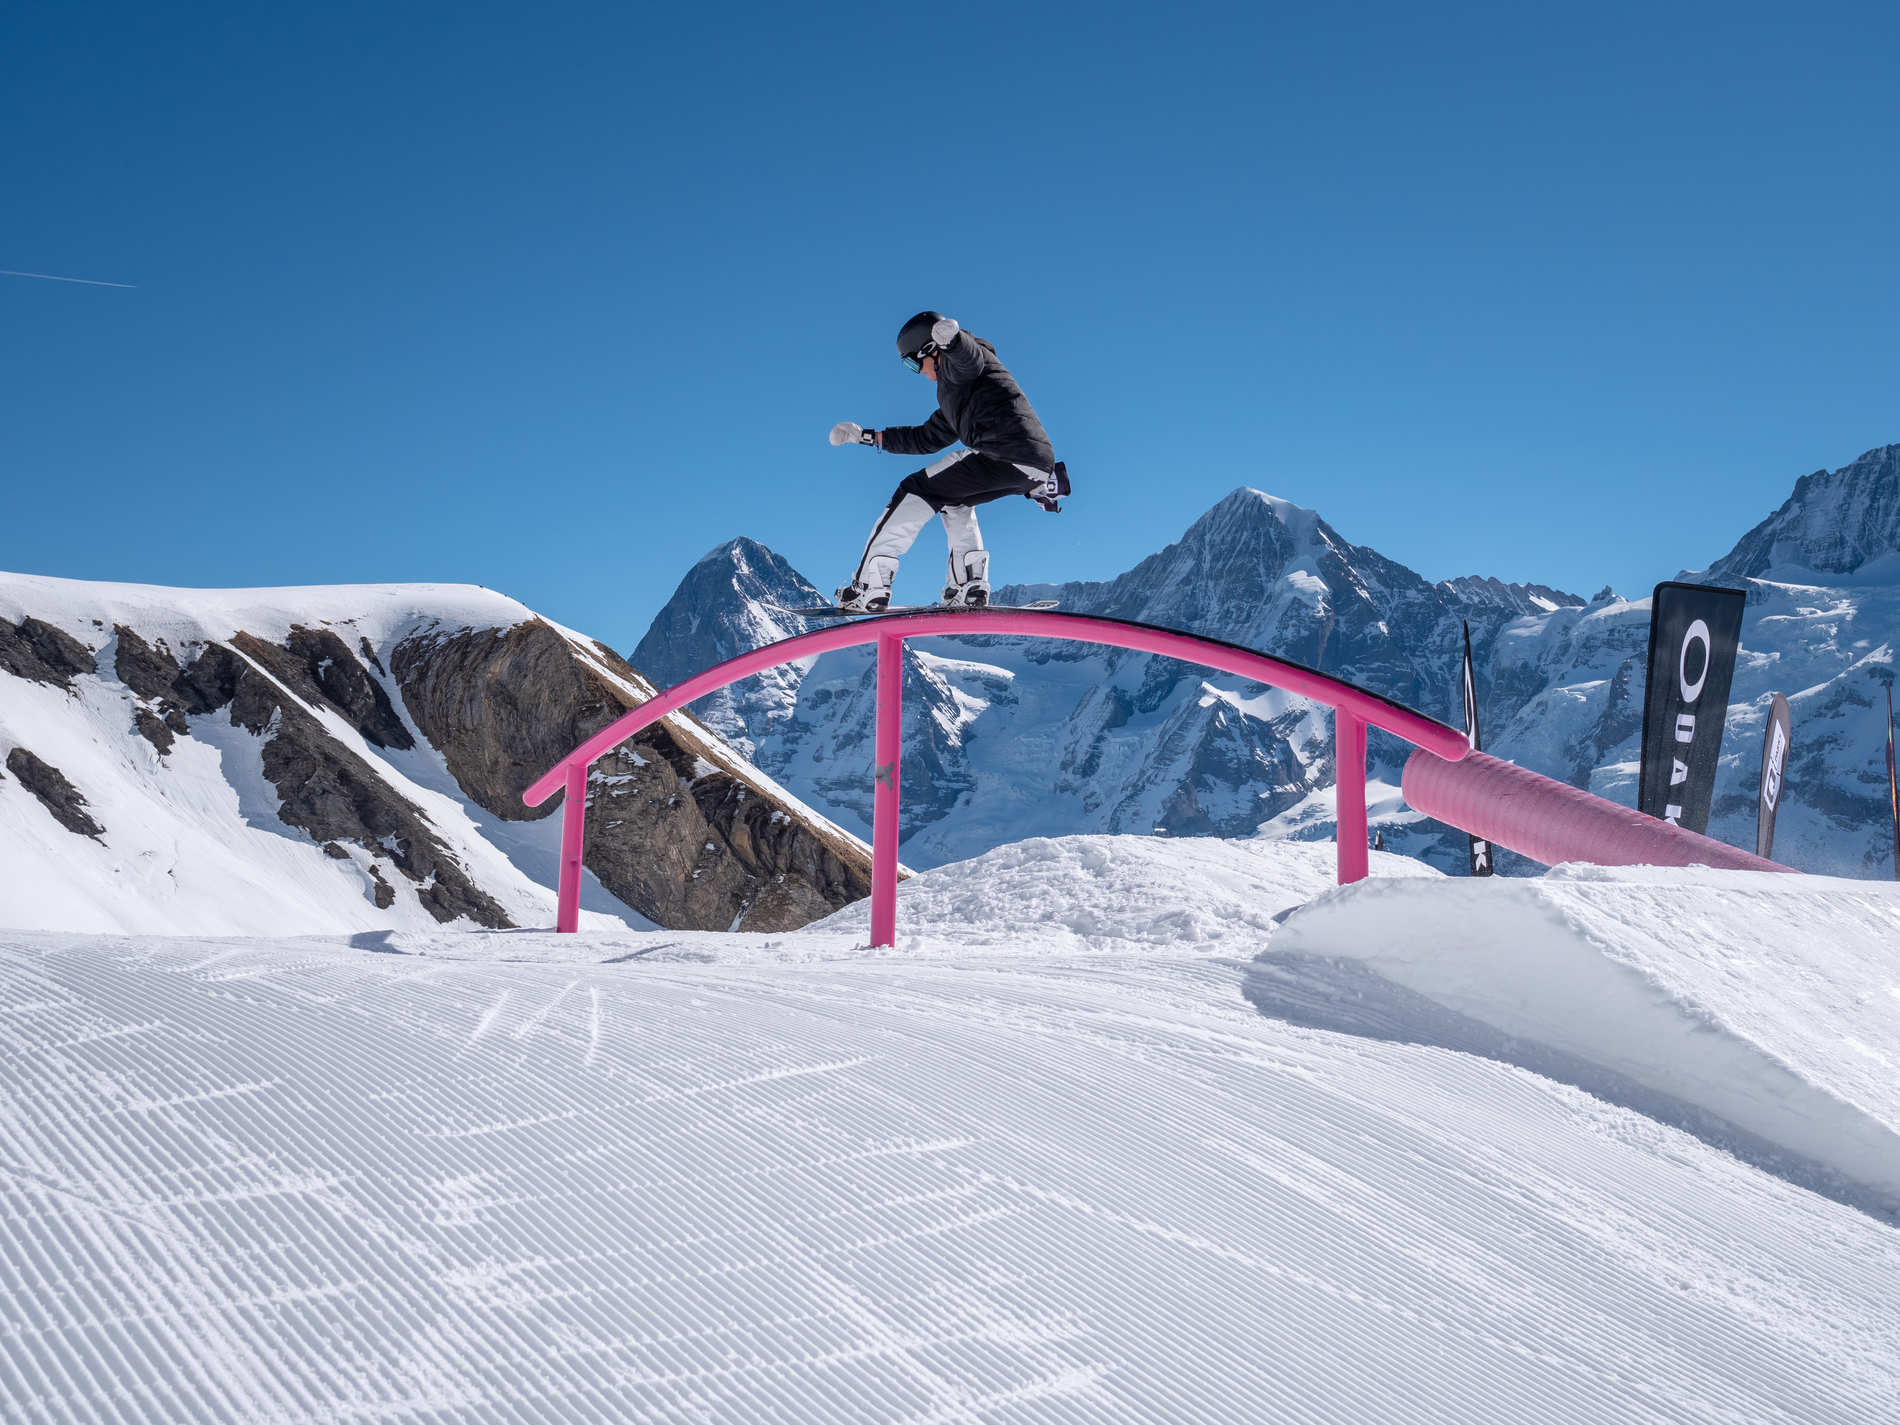 schilthorn 23 03 2019 action sb unknown patrick luchs qparks 003